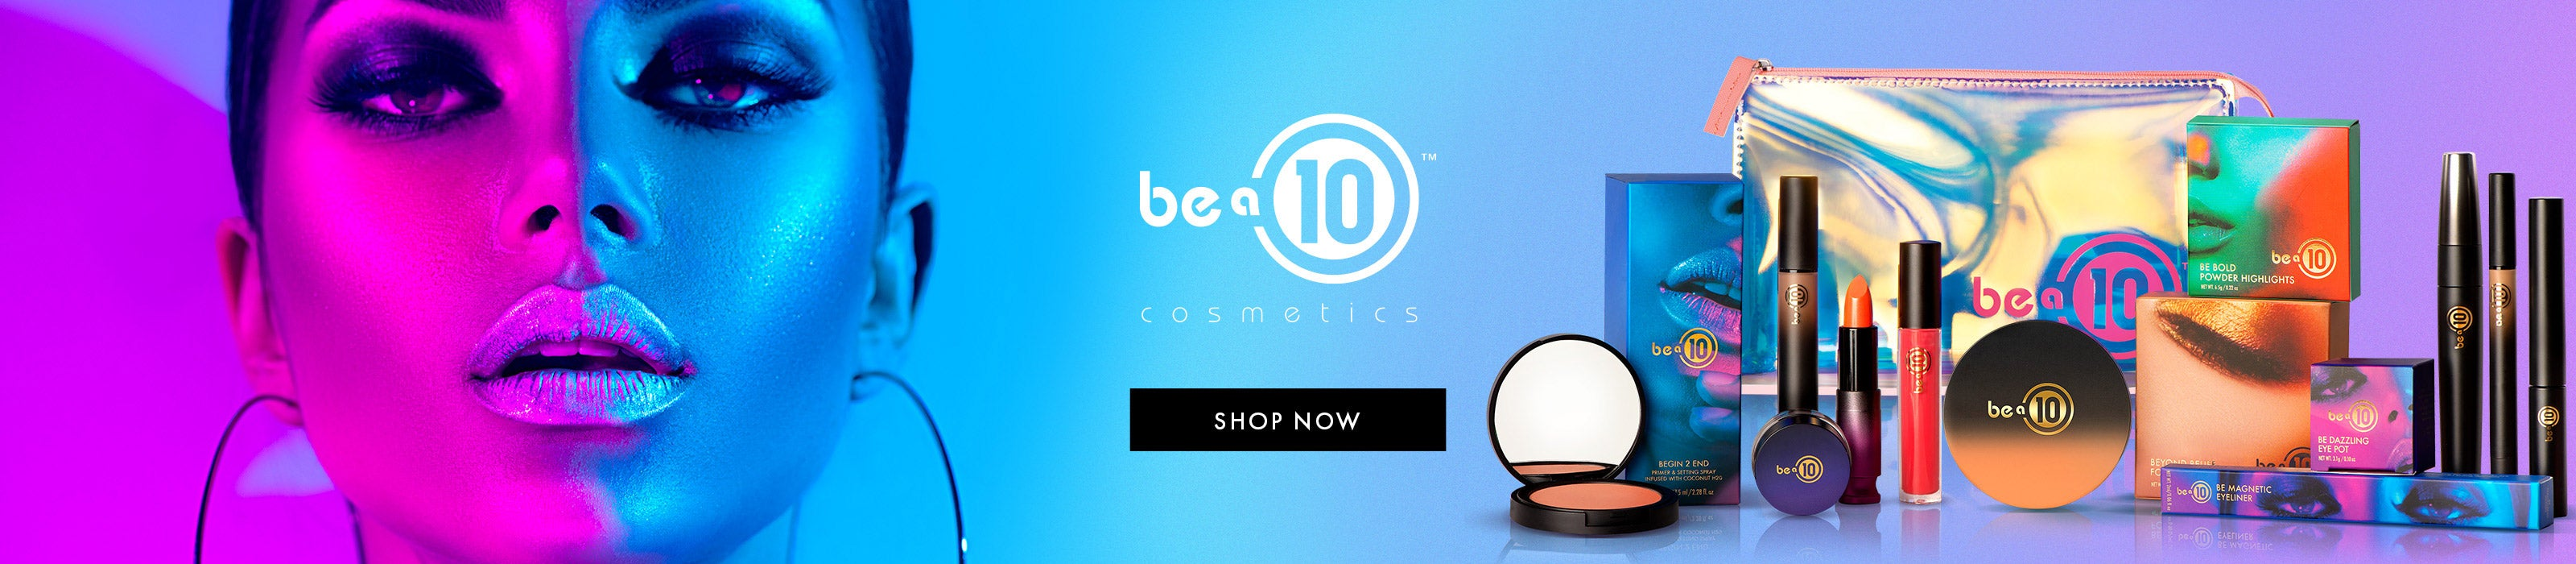 Be A 10 Cosmetics